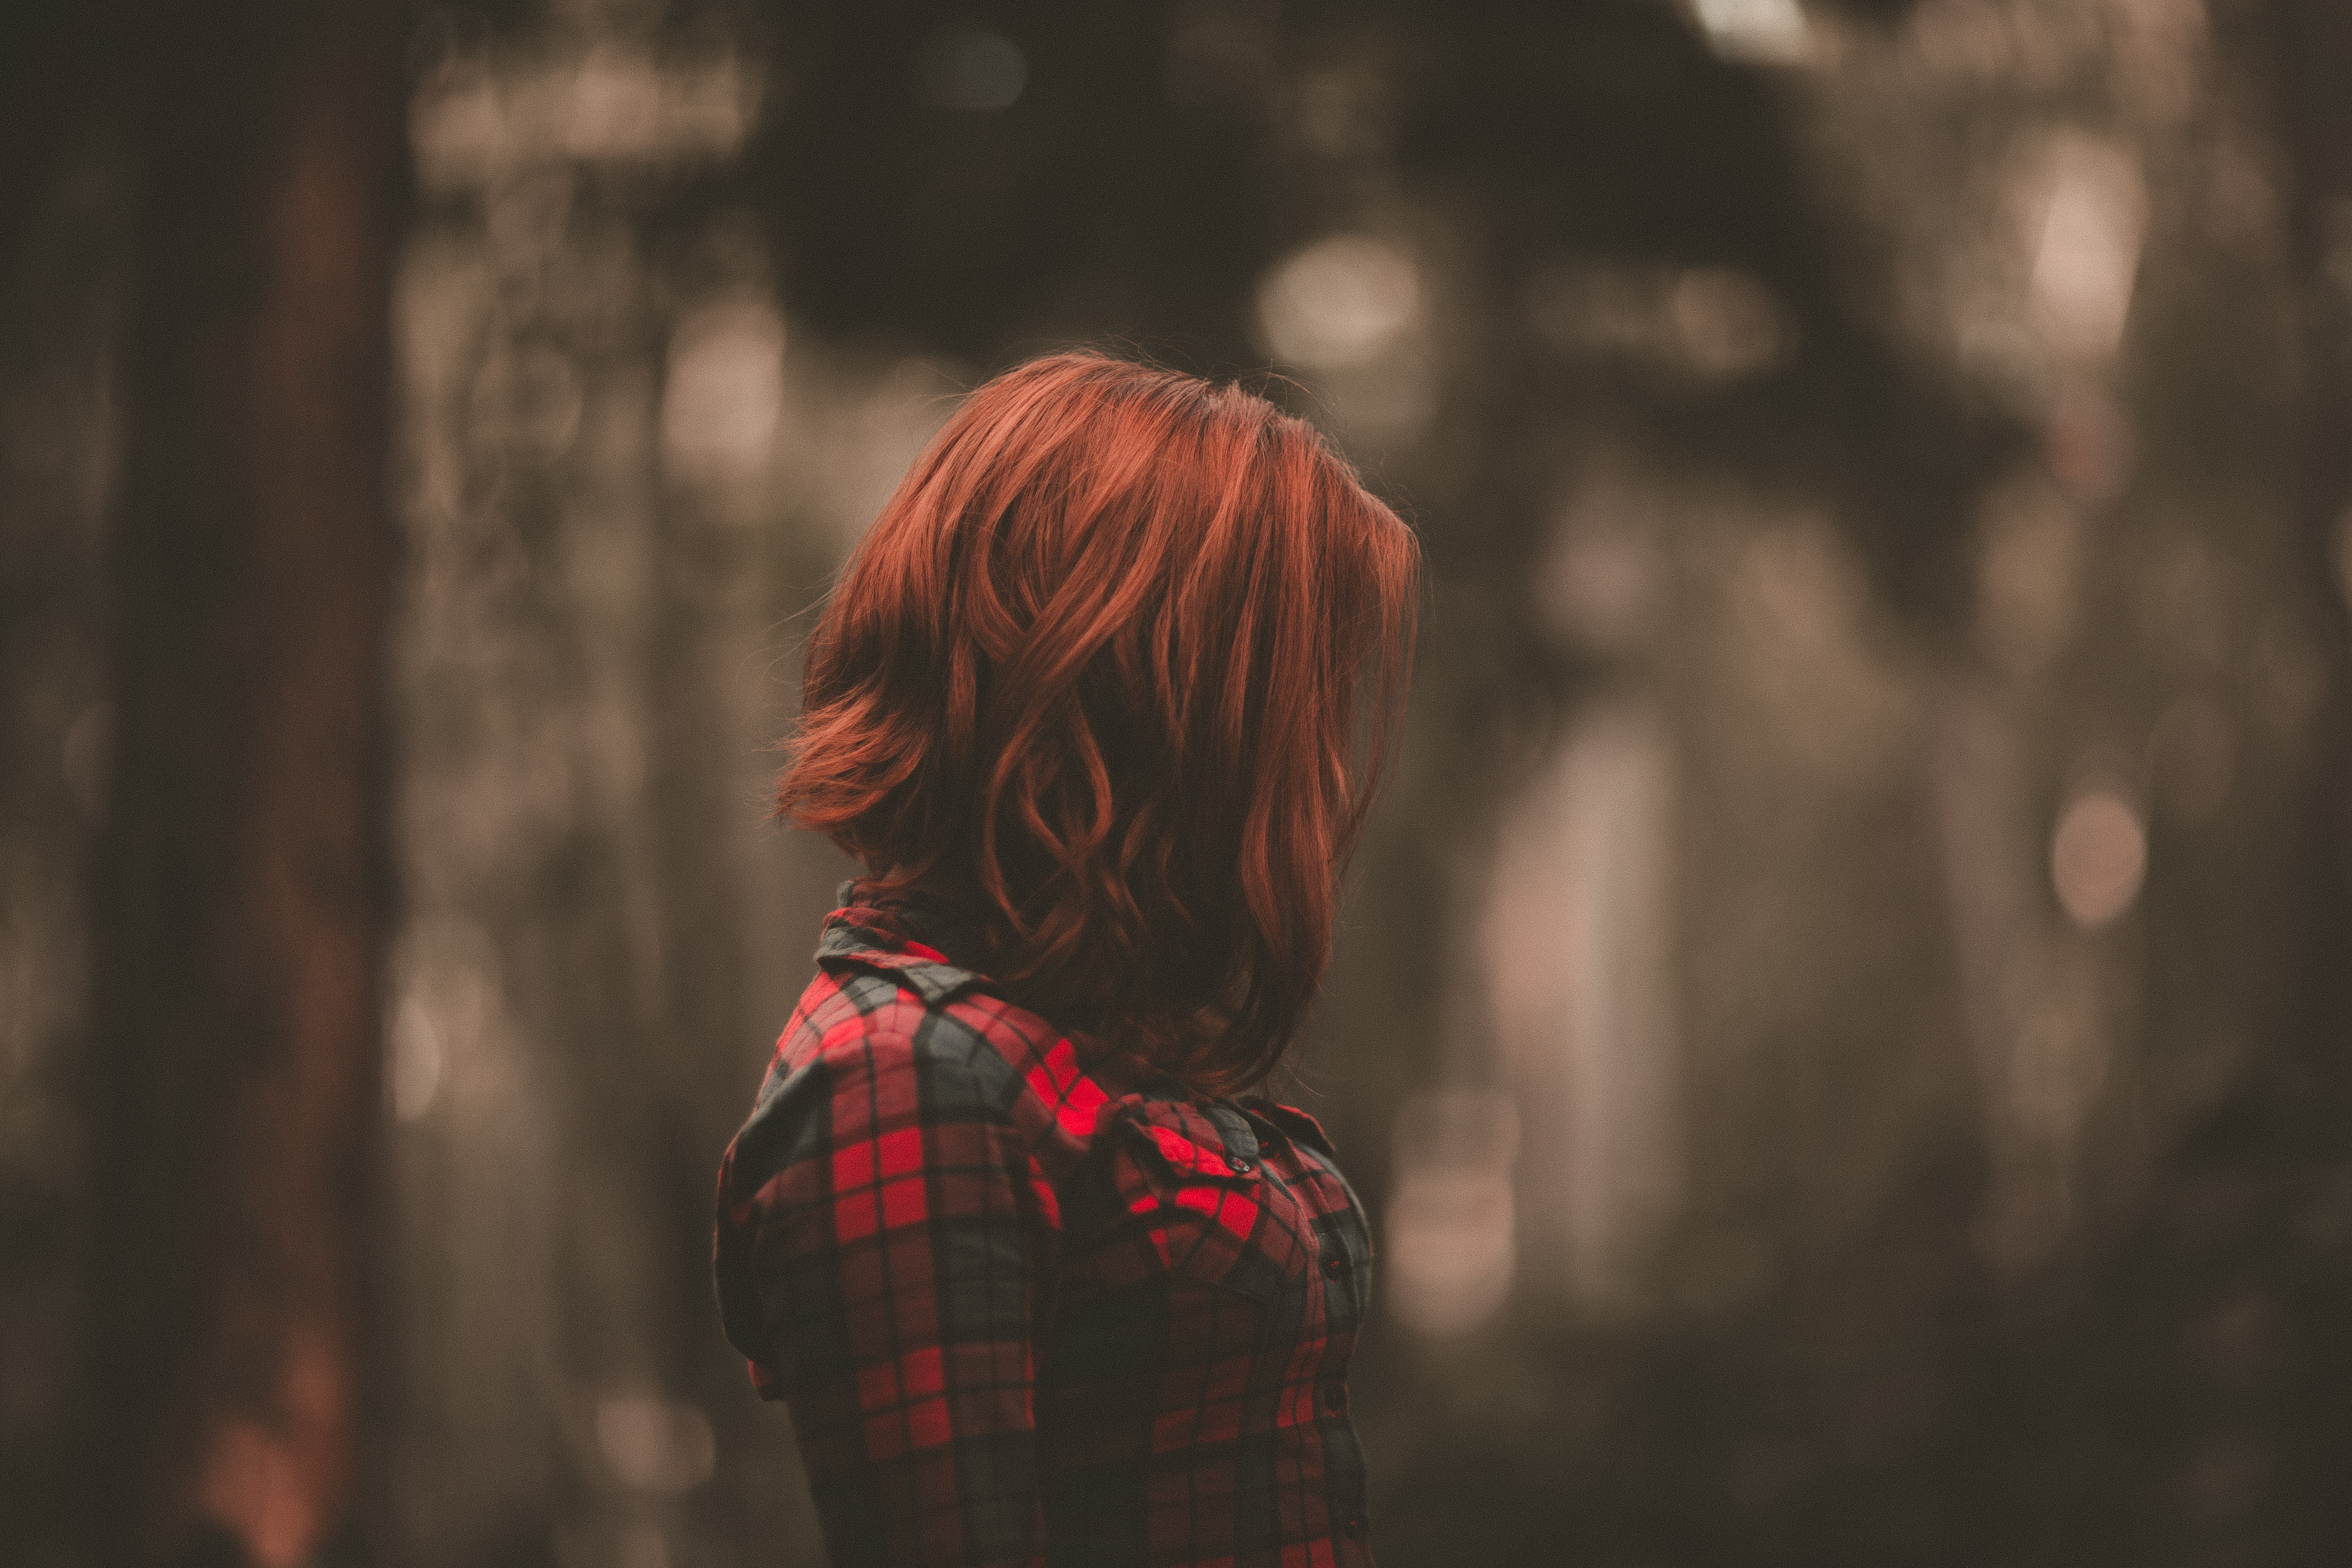 A woman with red hair obscuring her face in a plaid shirt against a blurry background